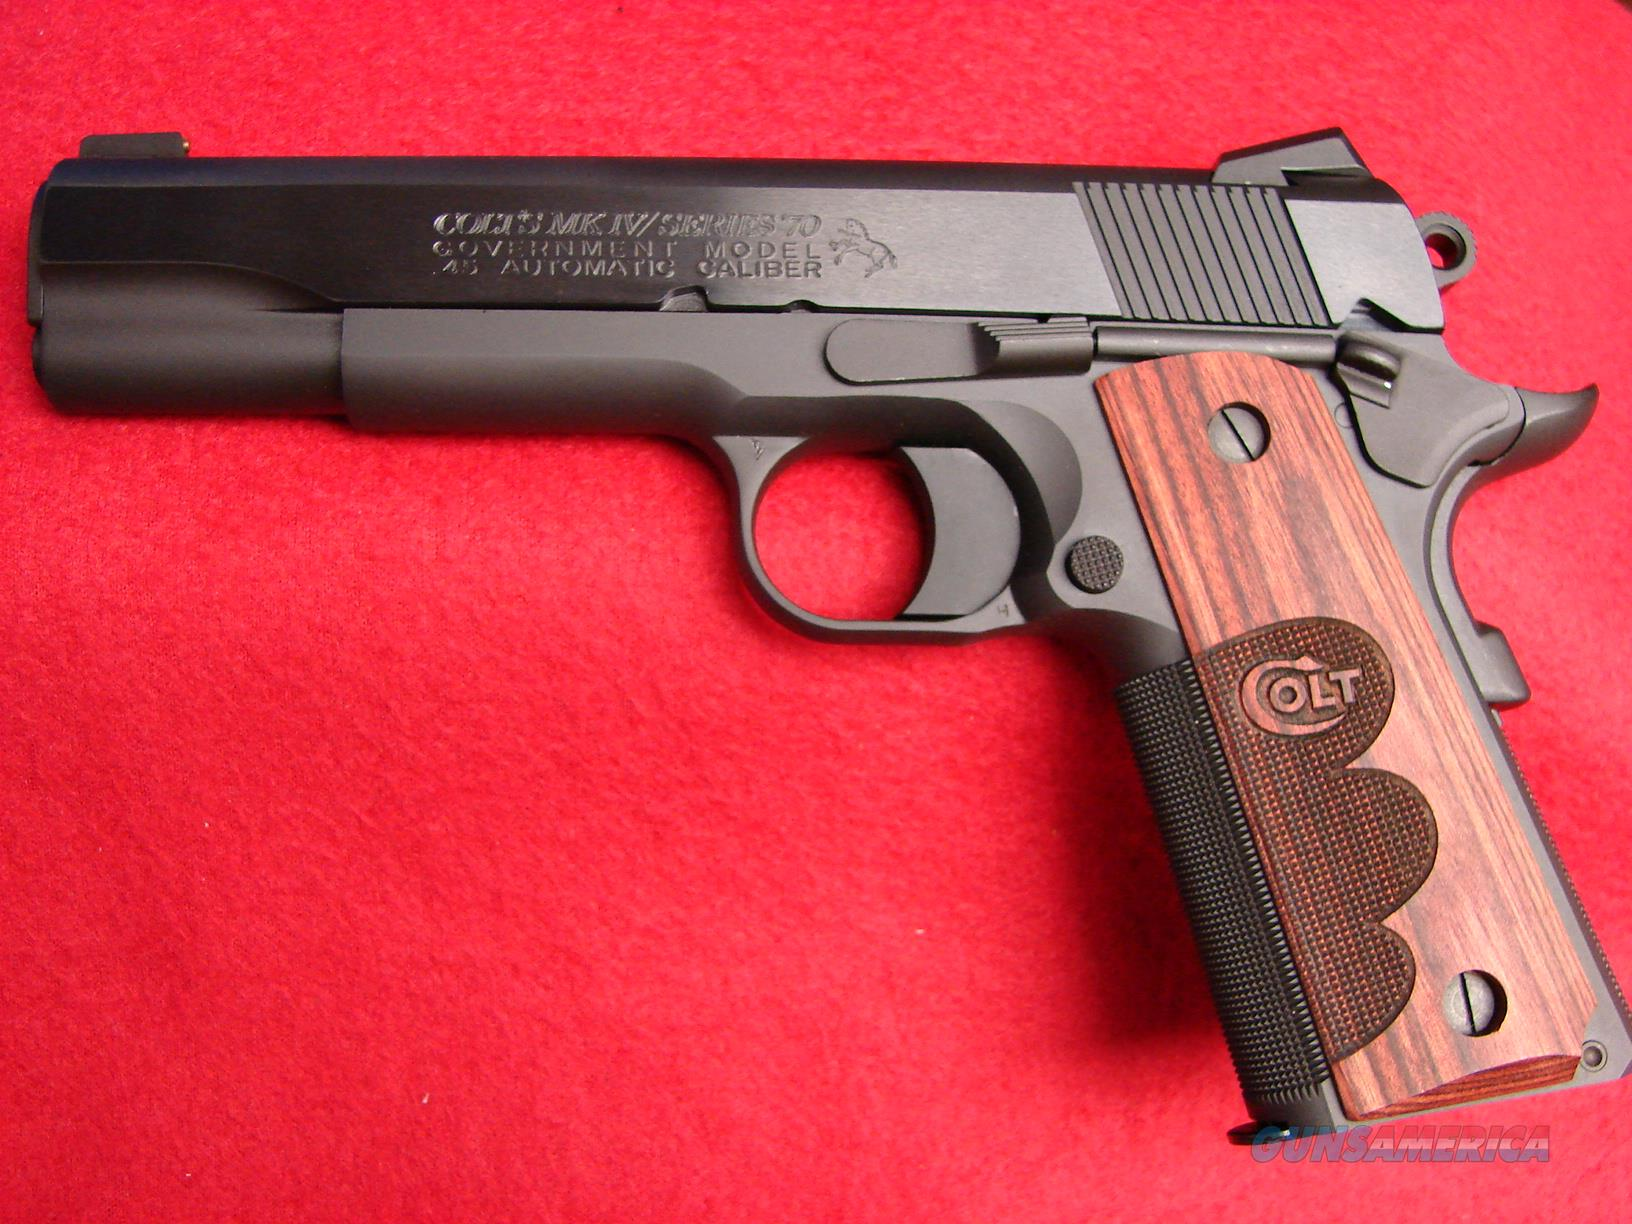 Colt MK IV - Series 70 Government - 45acp - Wiley Clapp Talo Edition - National Match - NIB  Guns > Pistols > Colt Automatic Pistols (1911 & Var)